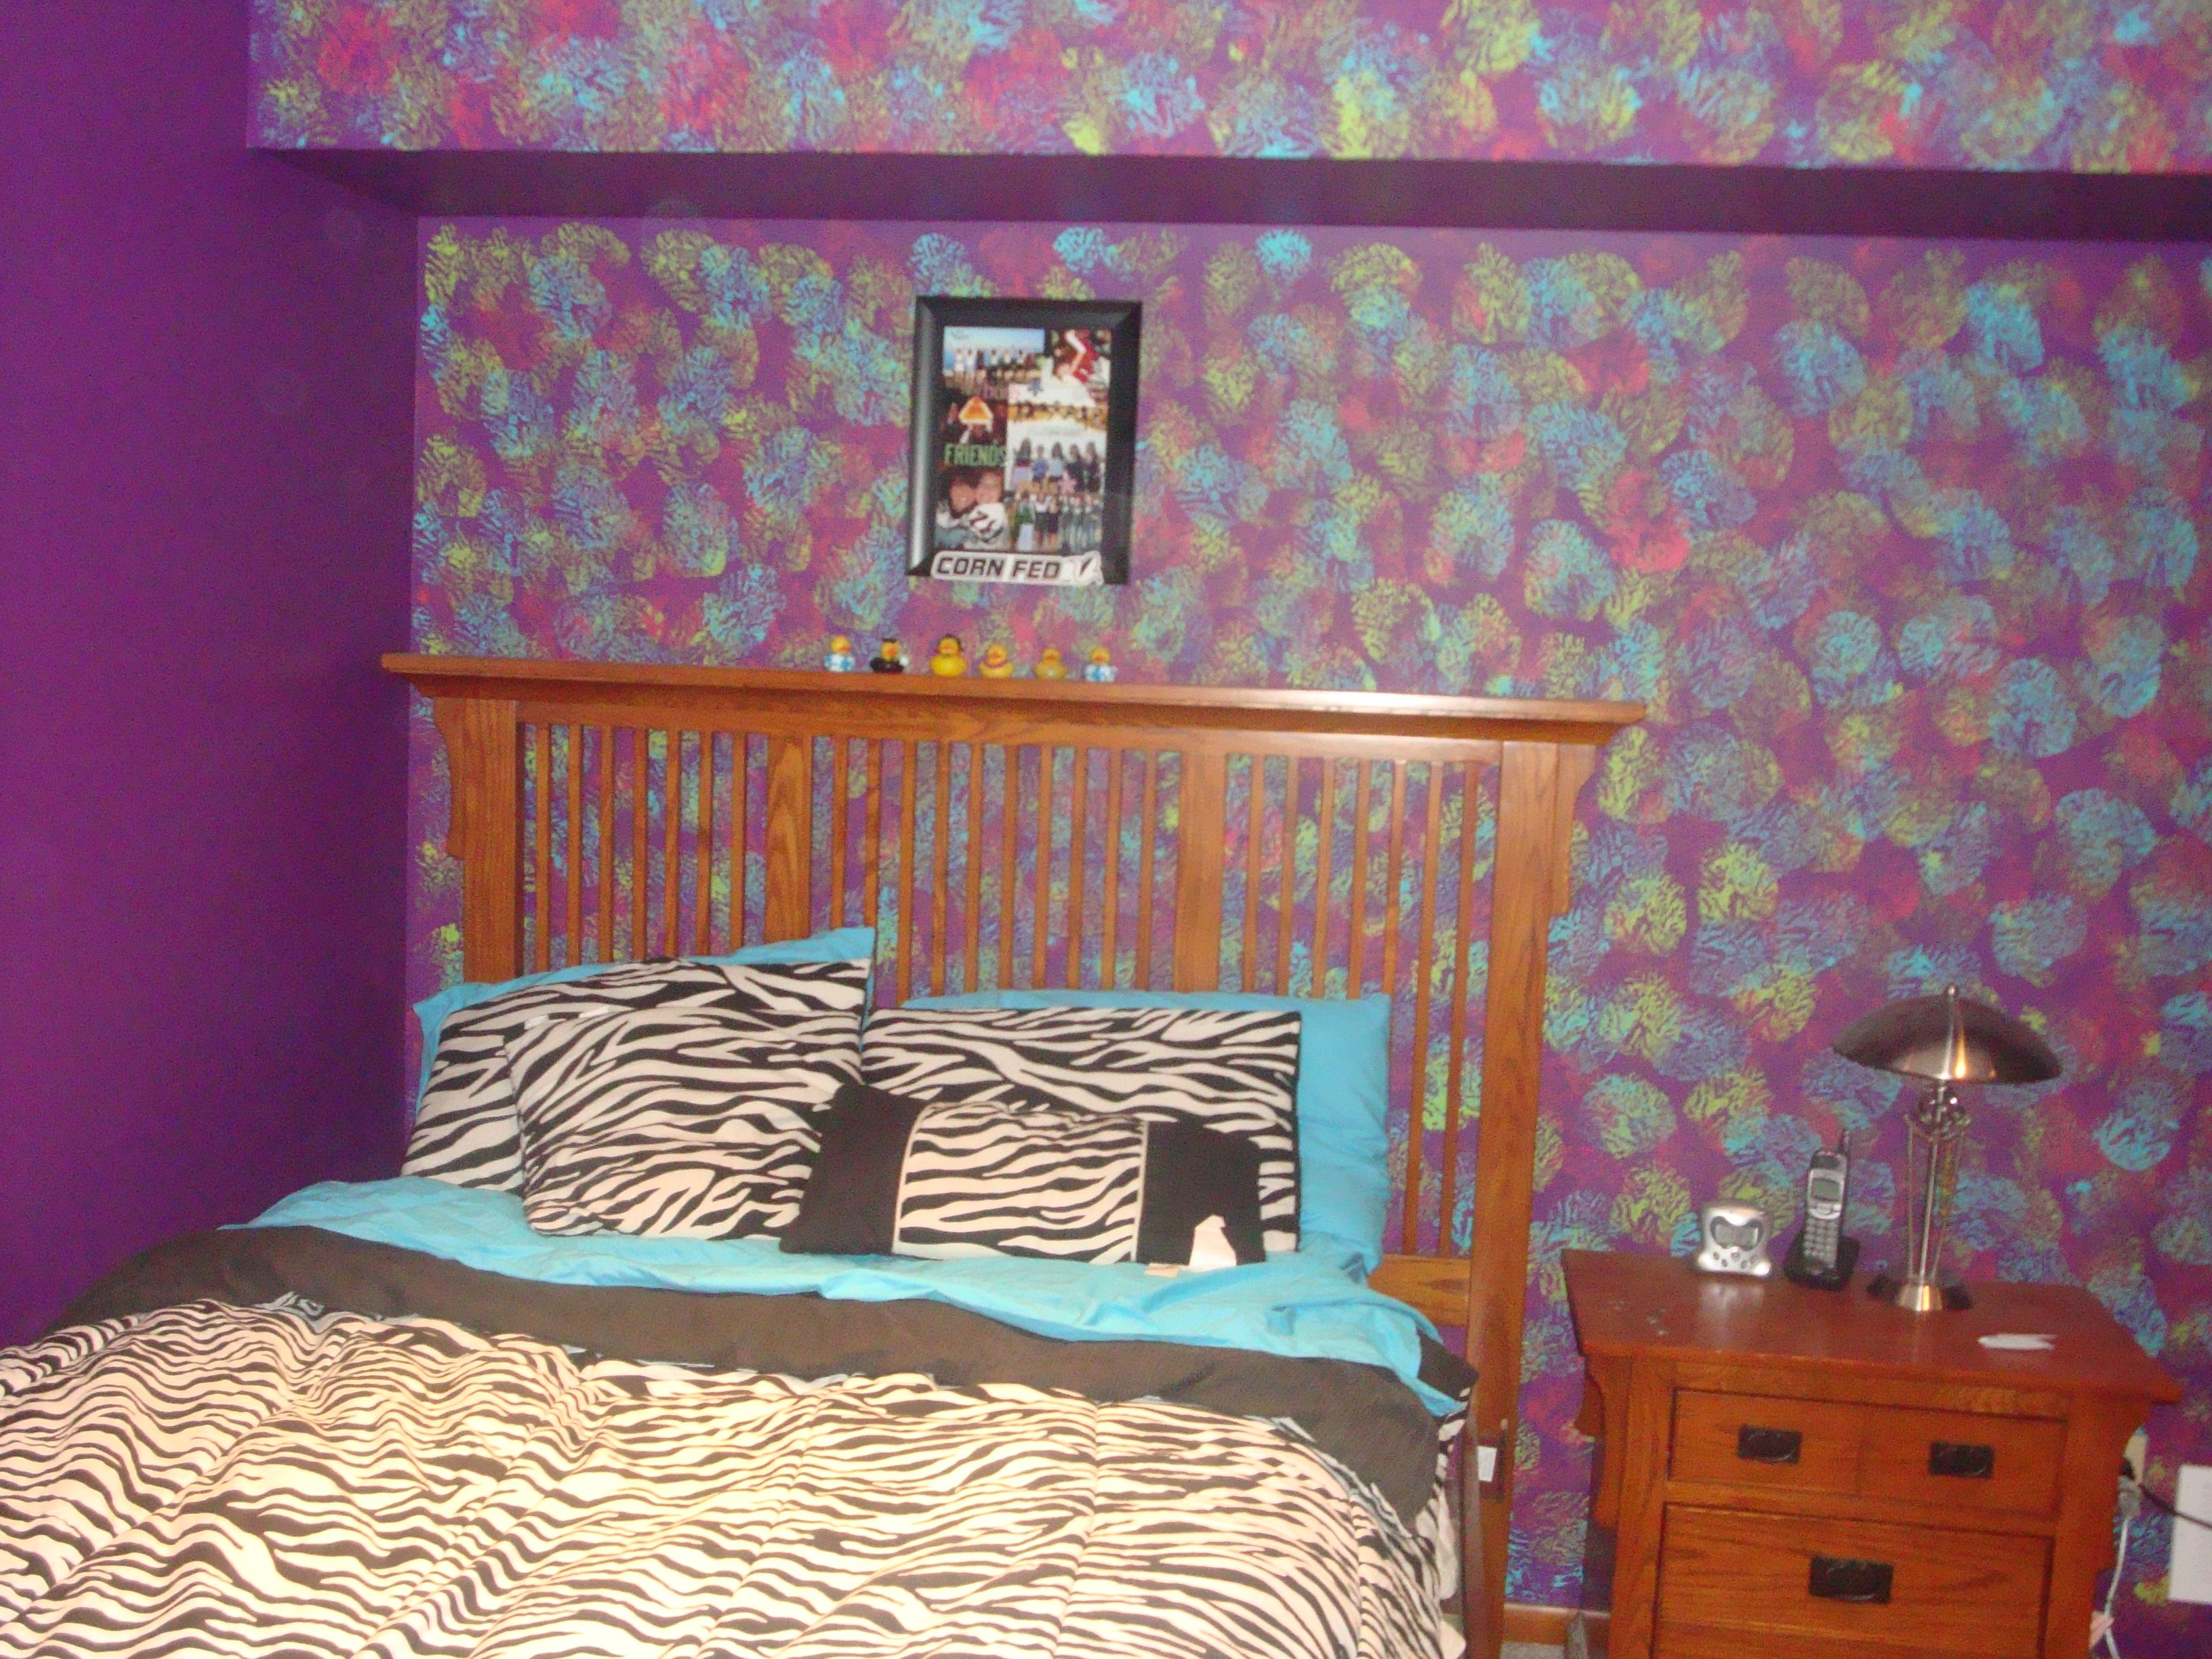 This Is My Legit Bedroom I Painted The Wall Purple First And Then